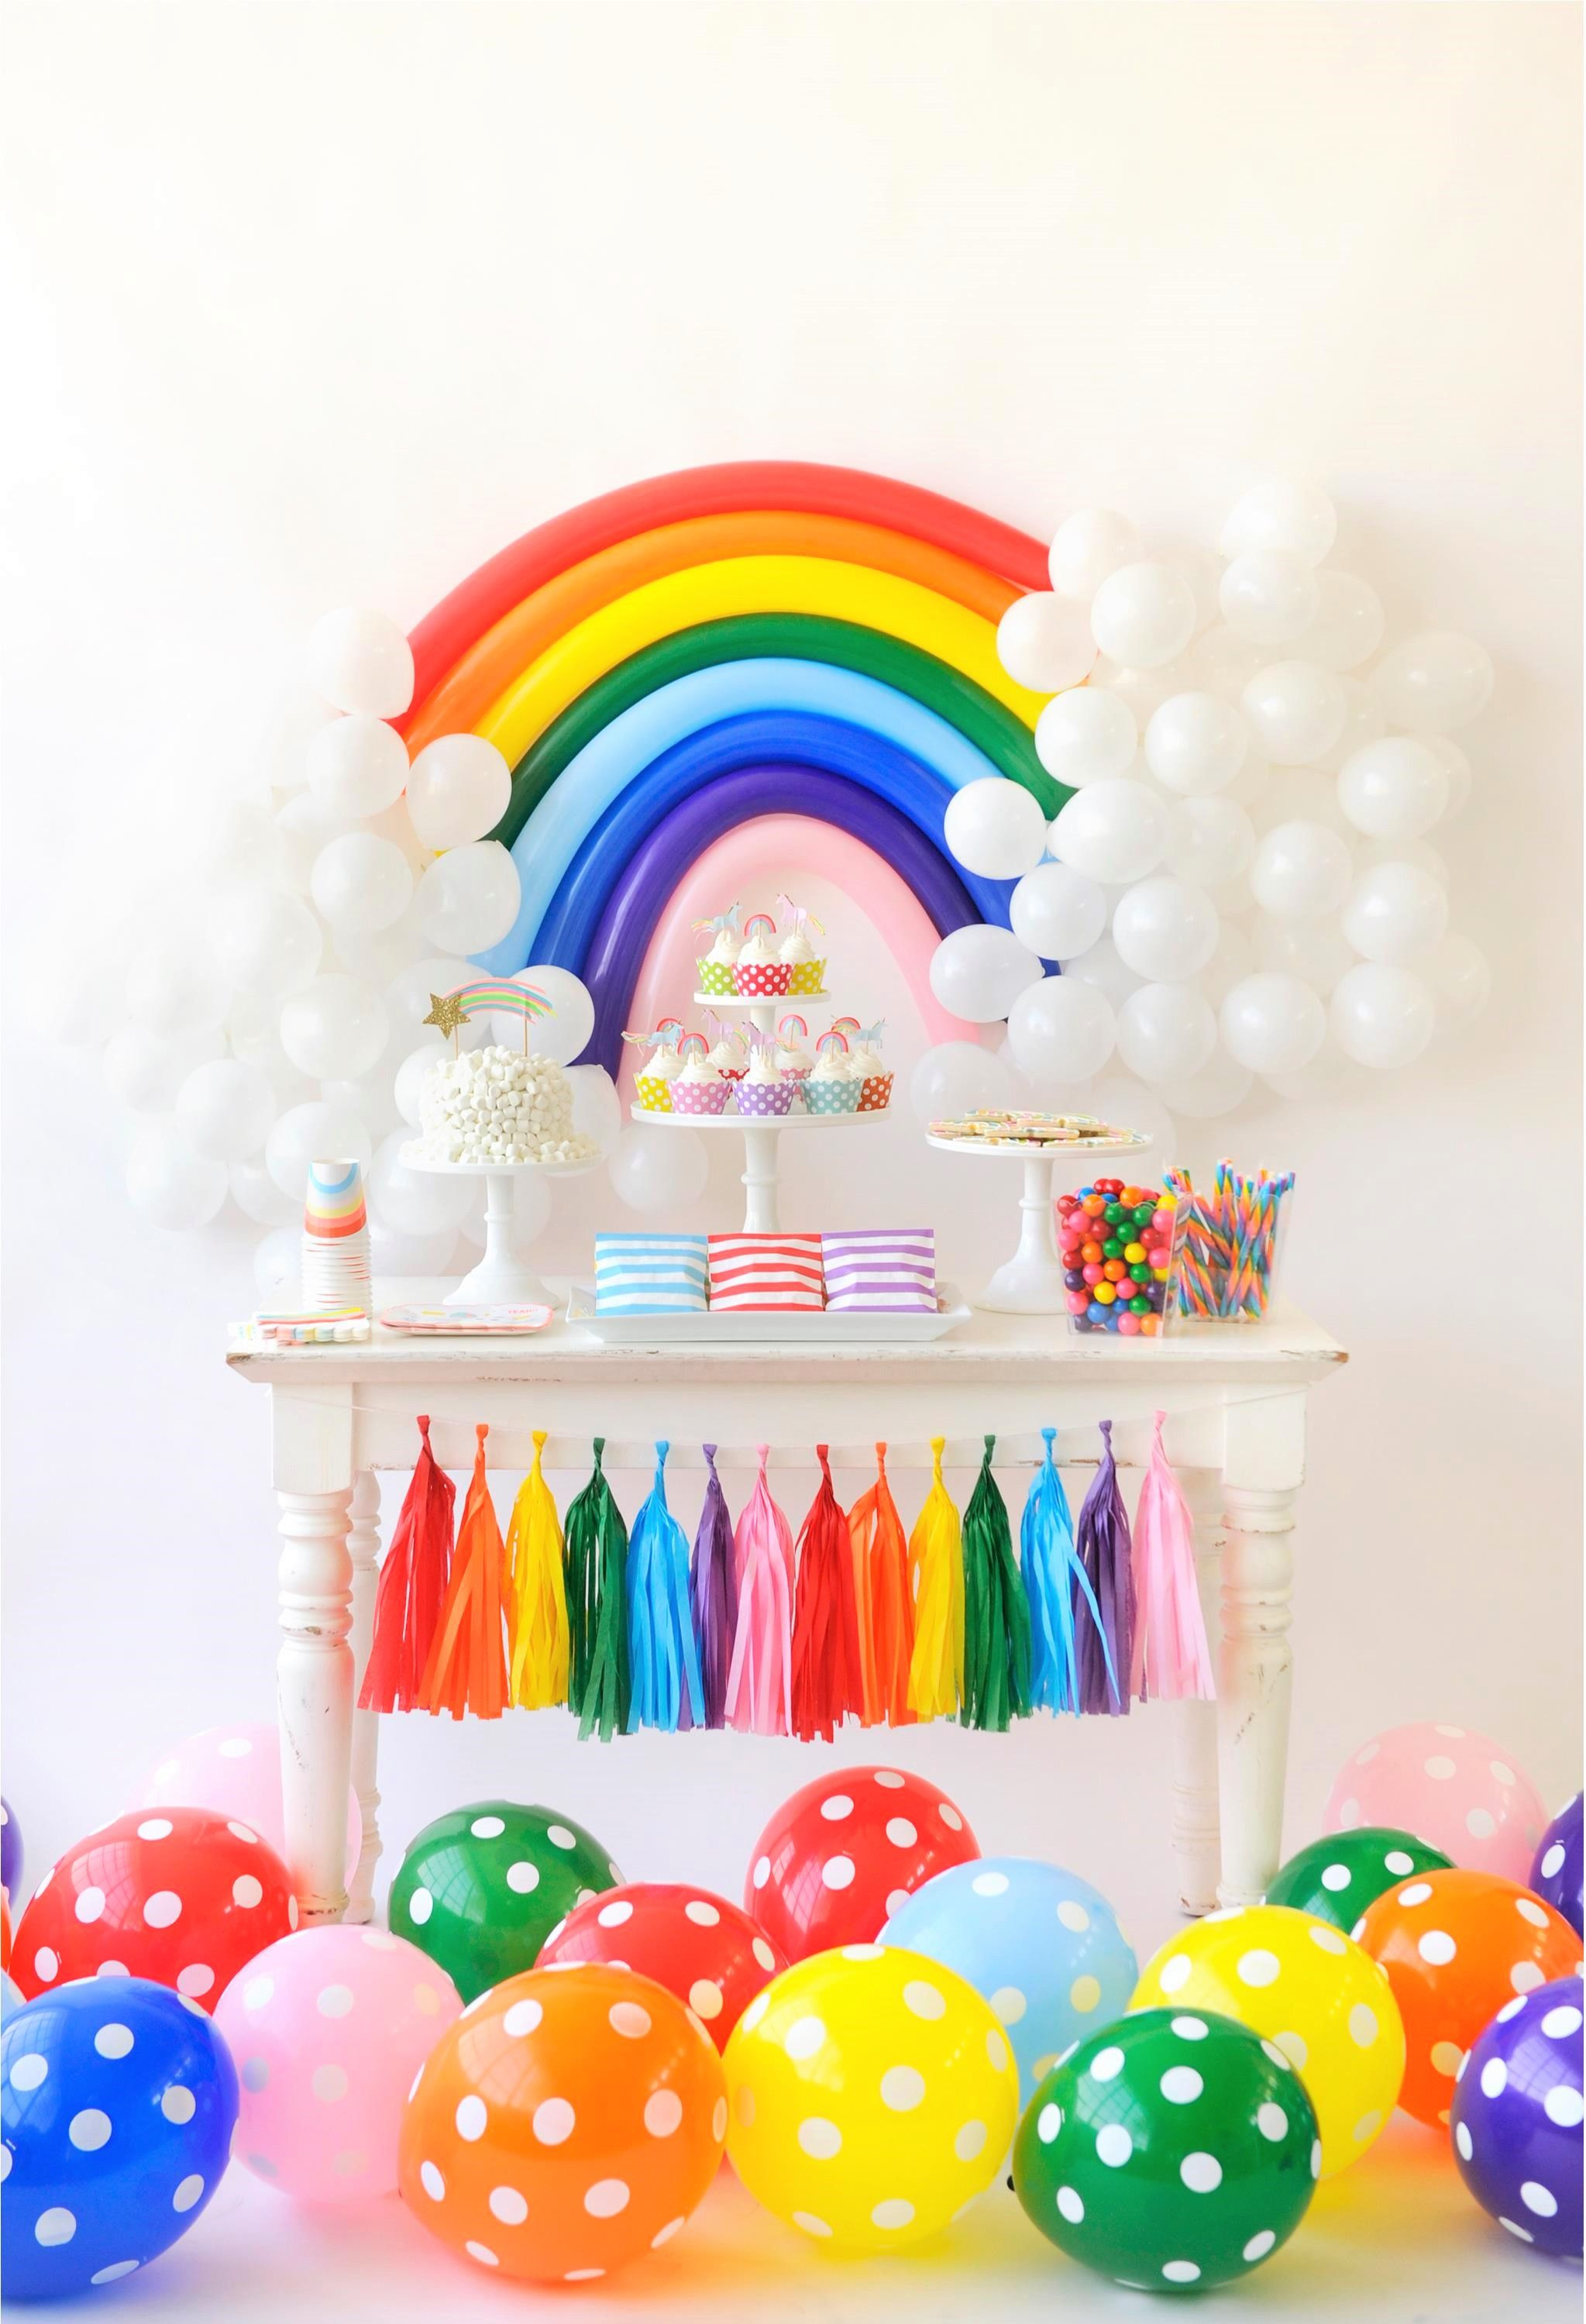 colorful birthday images ; 3c970d272ef6443d4ef6177cd29fa124